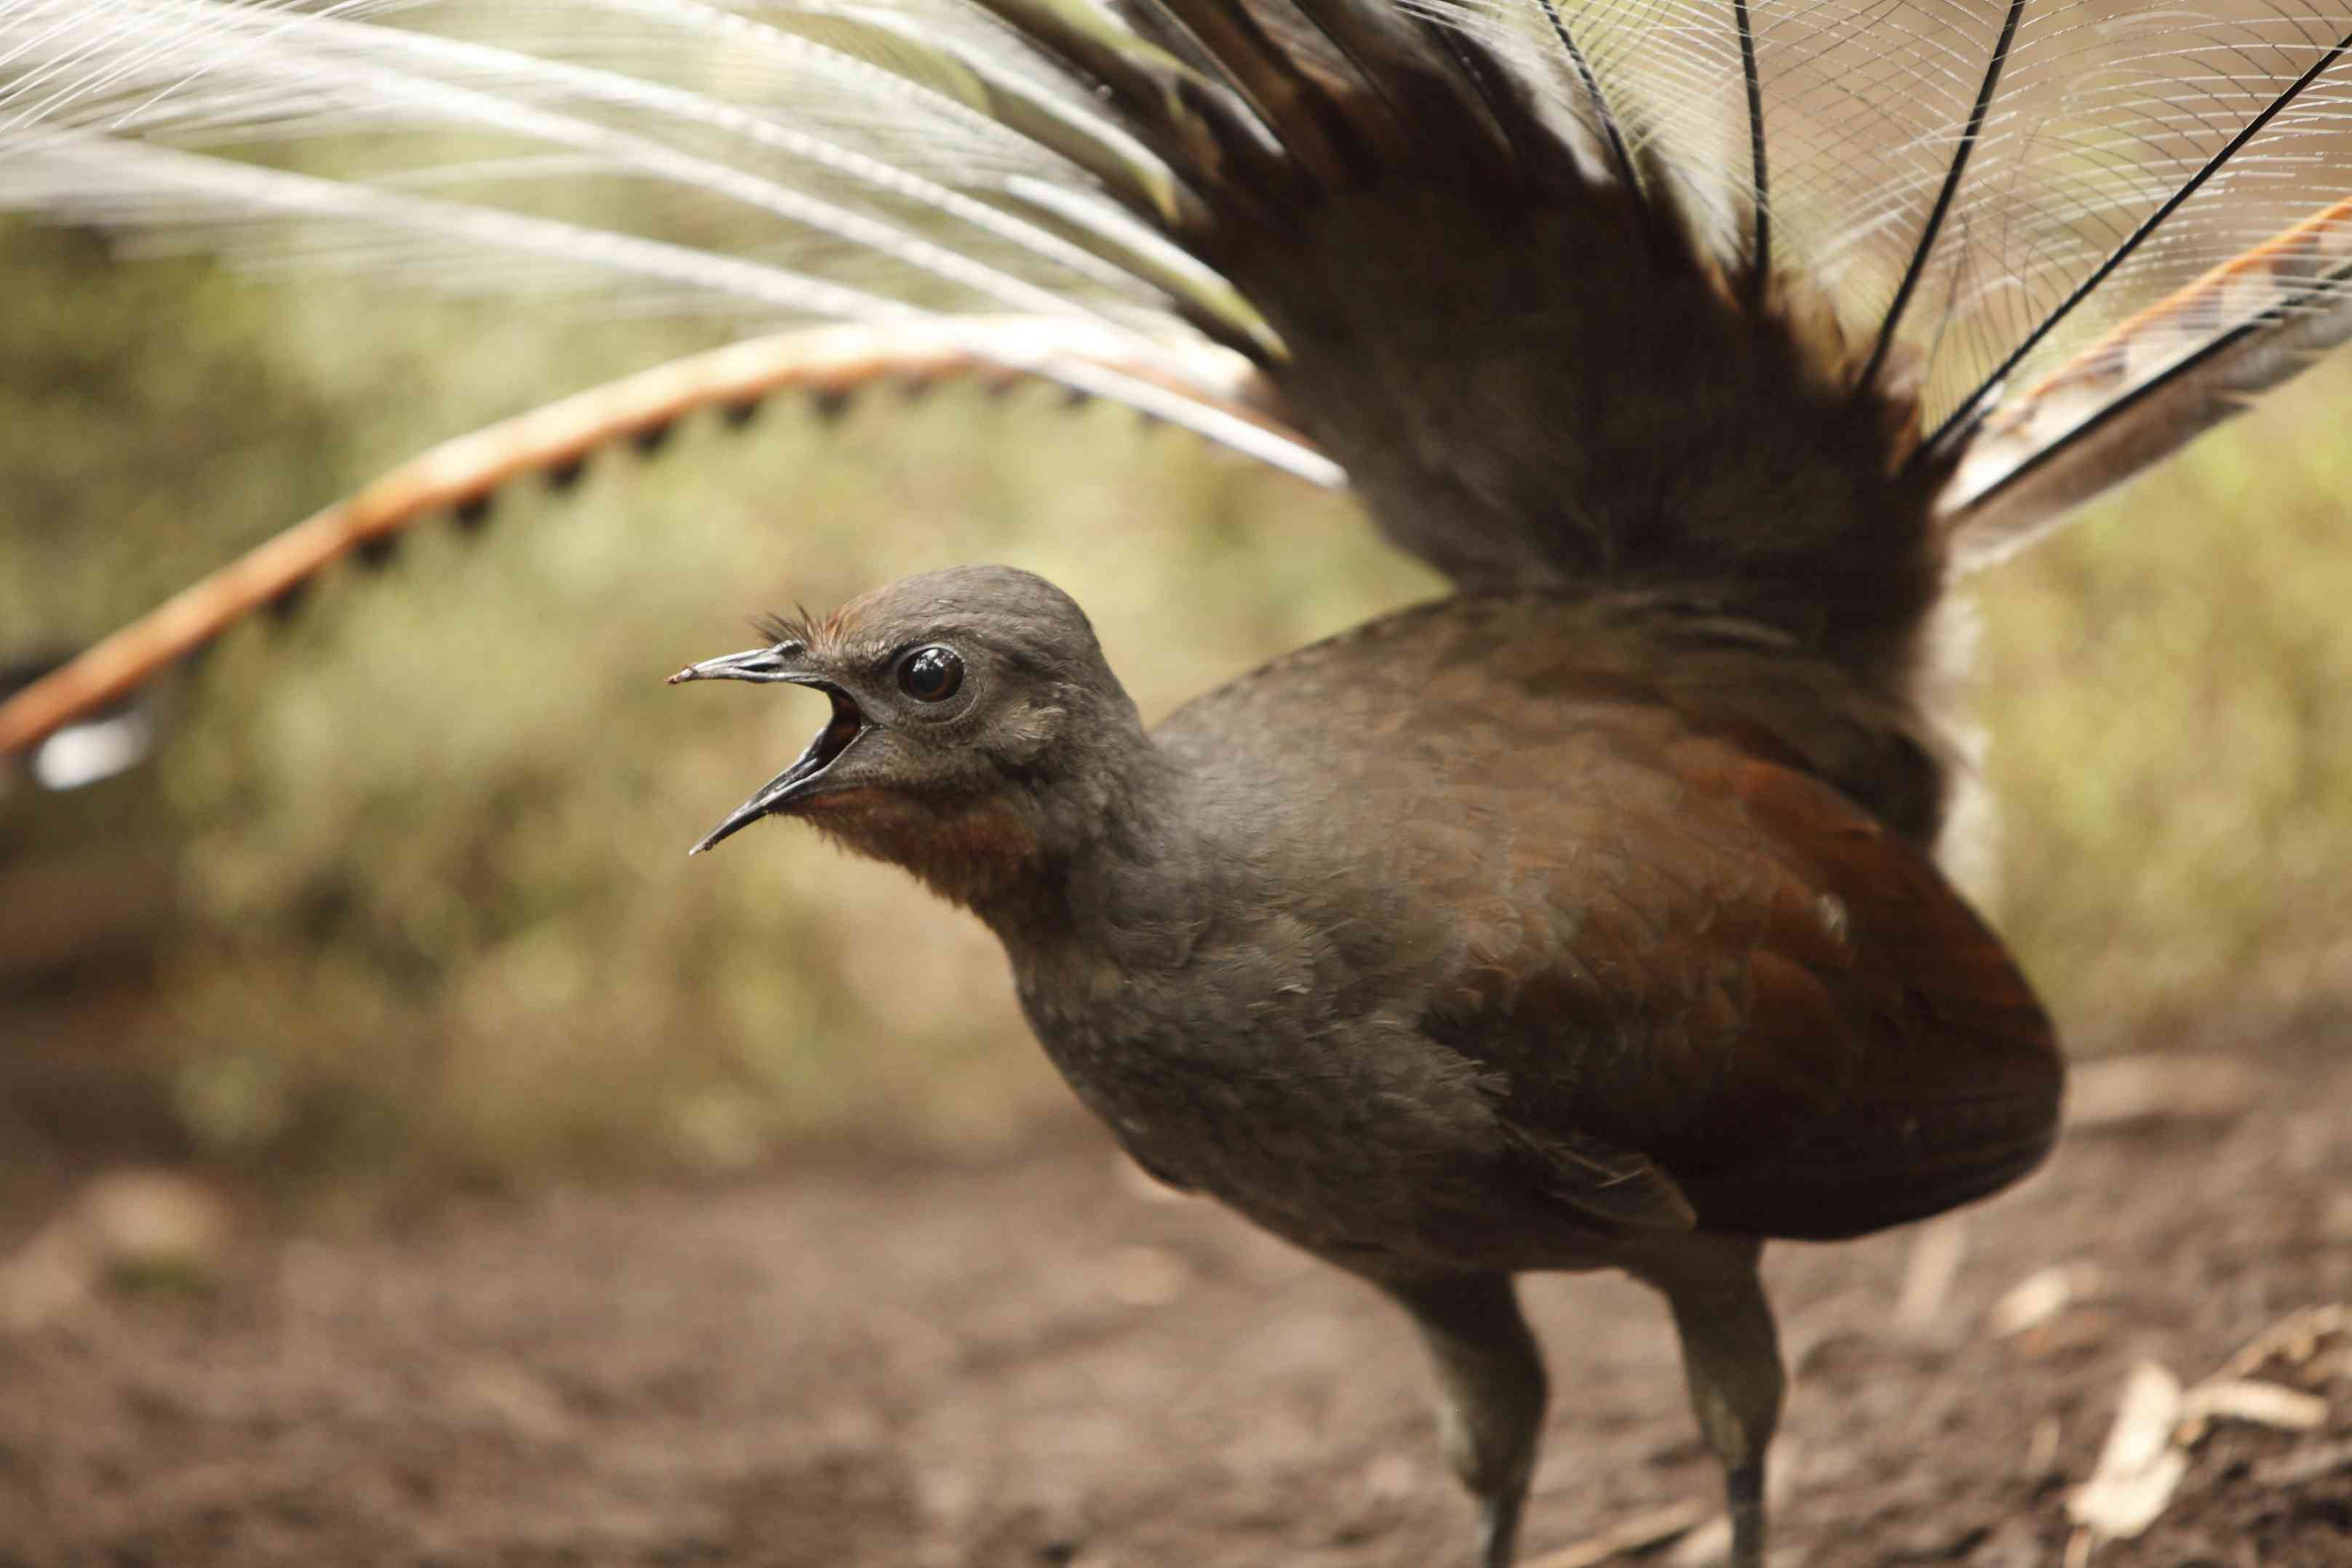 A large brown bird with a long tail and an open beak